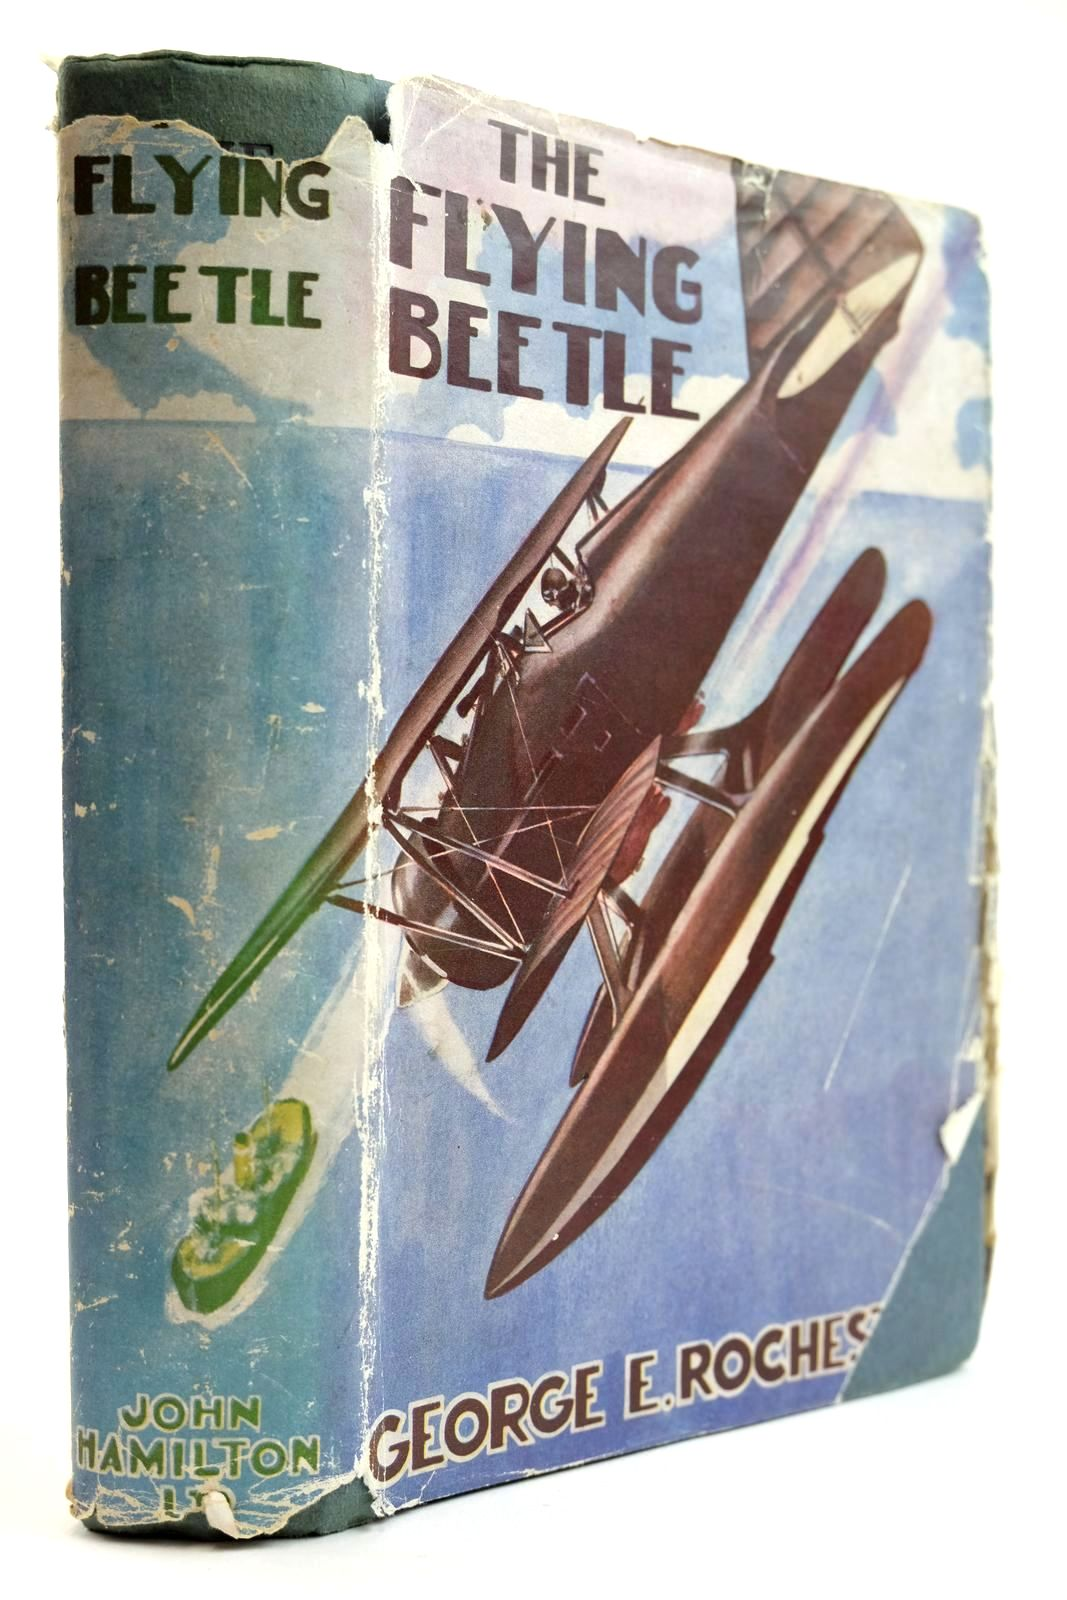 Photo of THE FLYING BEETLE written by Rochester, George E. illustrated by Bradshaw, Stanley Orton published by John Hamilton Ltd. (STOCK CODE: 2132014)  for sale by Stella & Rose's Books